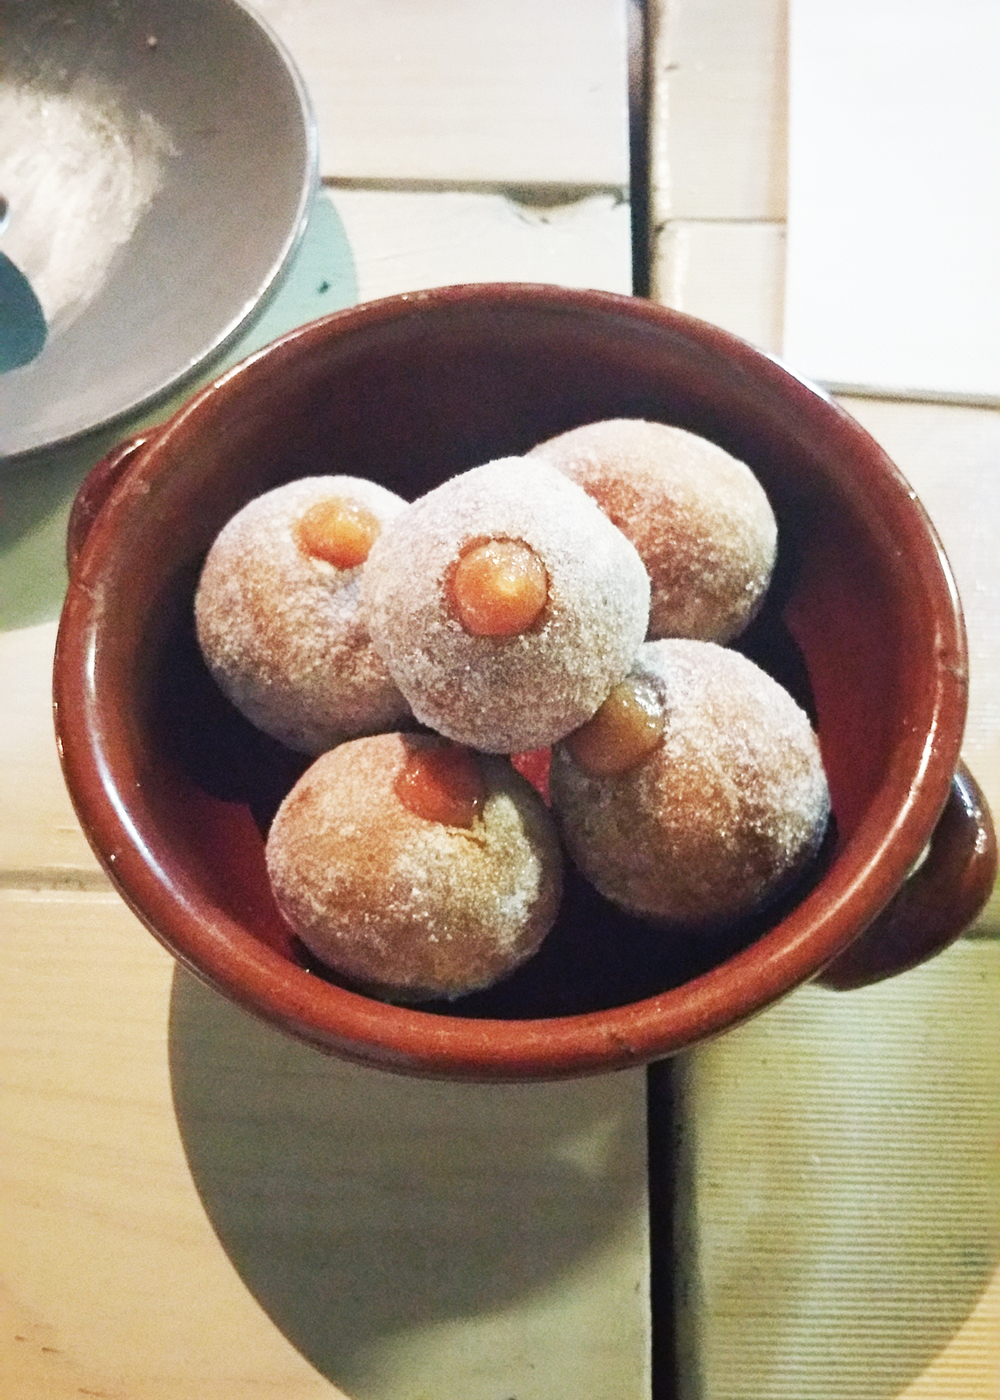 Warm Spanish doughnuts : filled with quince & dusted in spiced sugar.